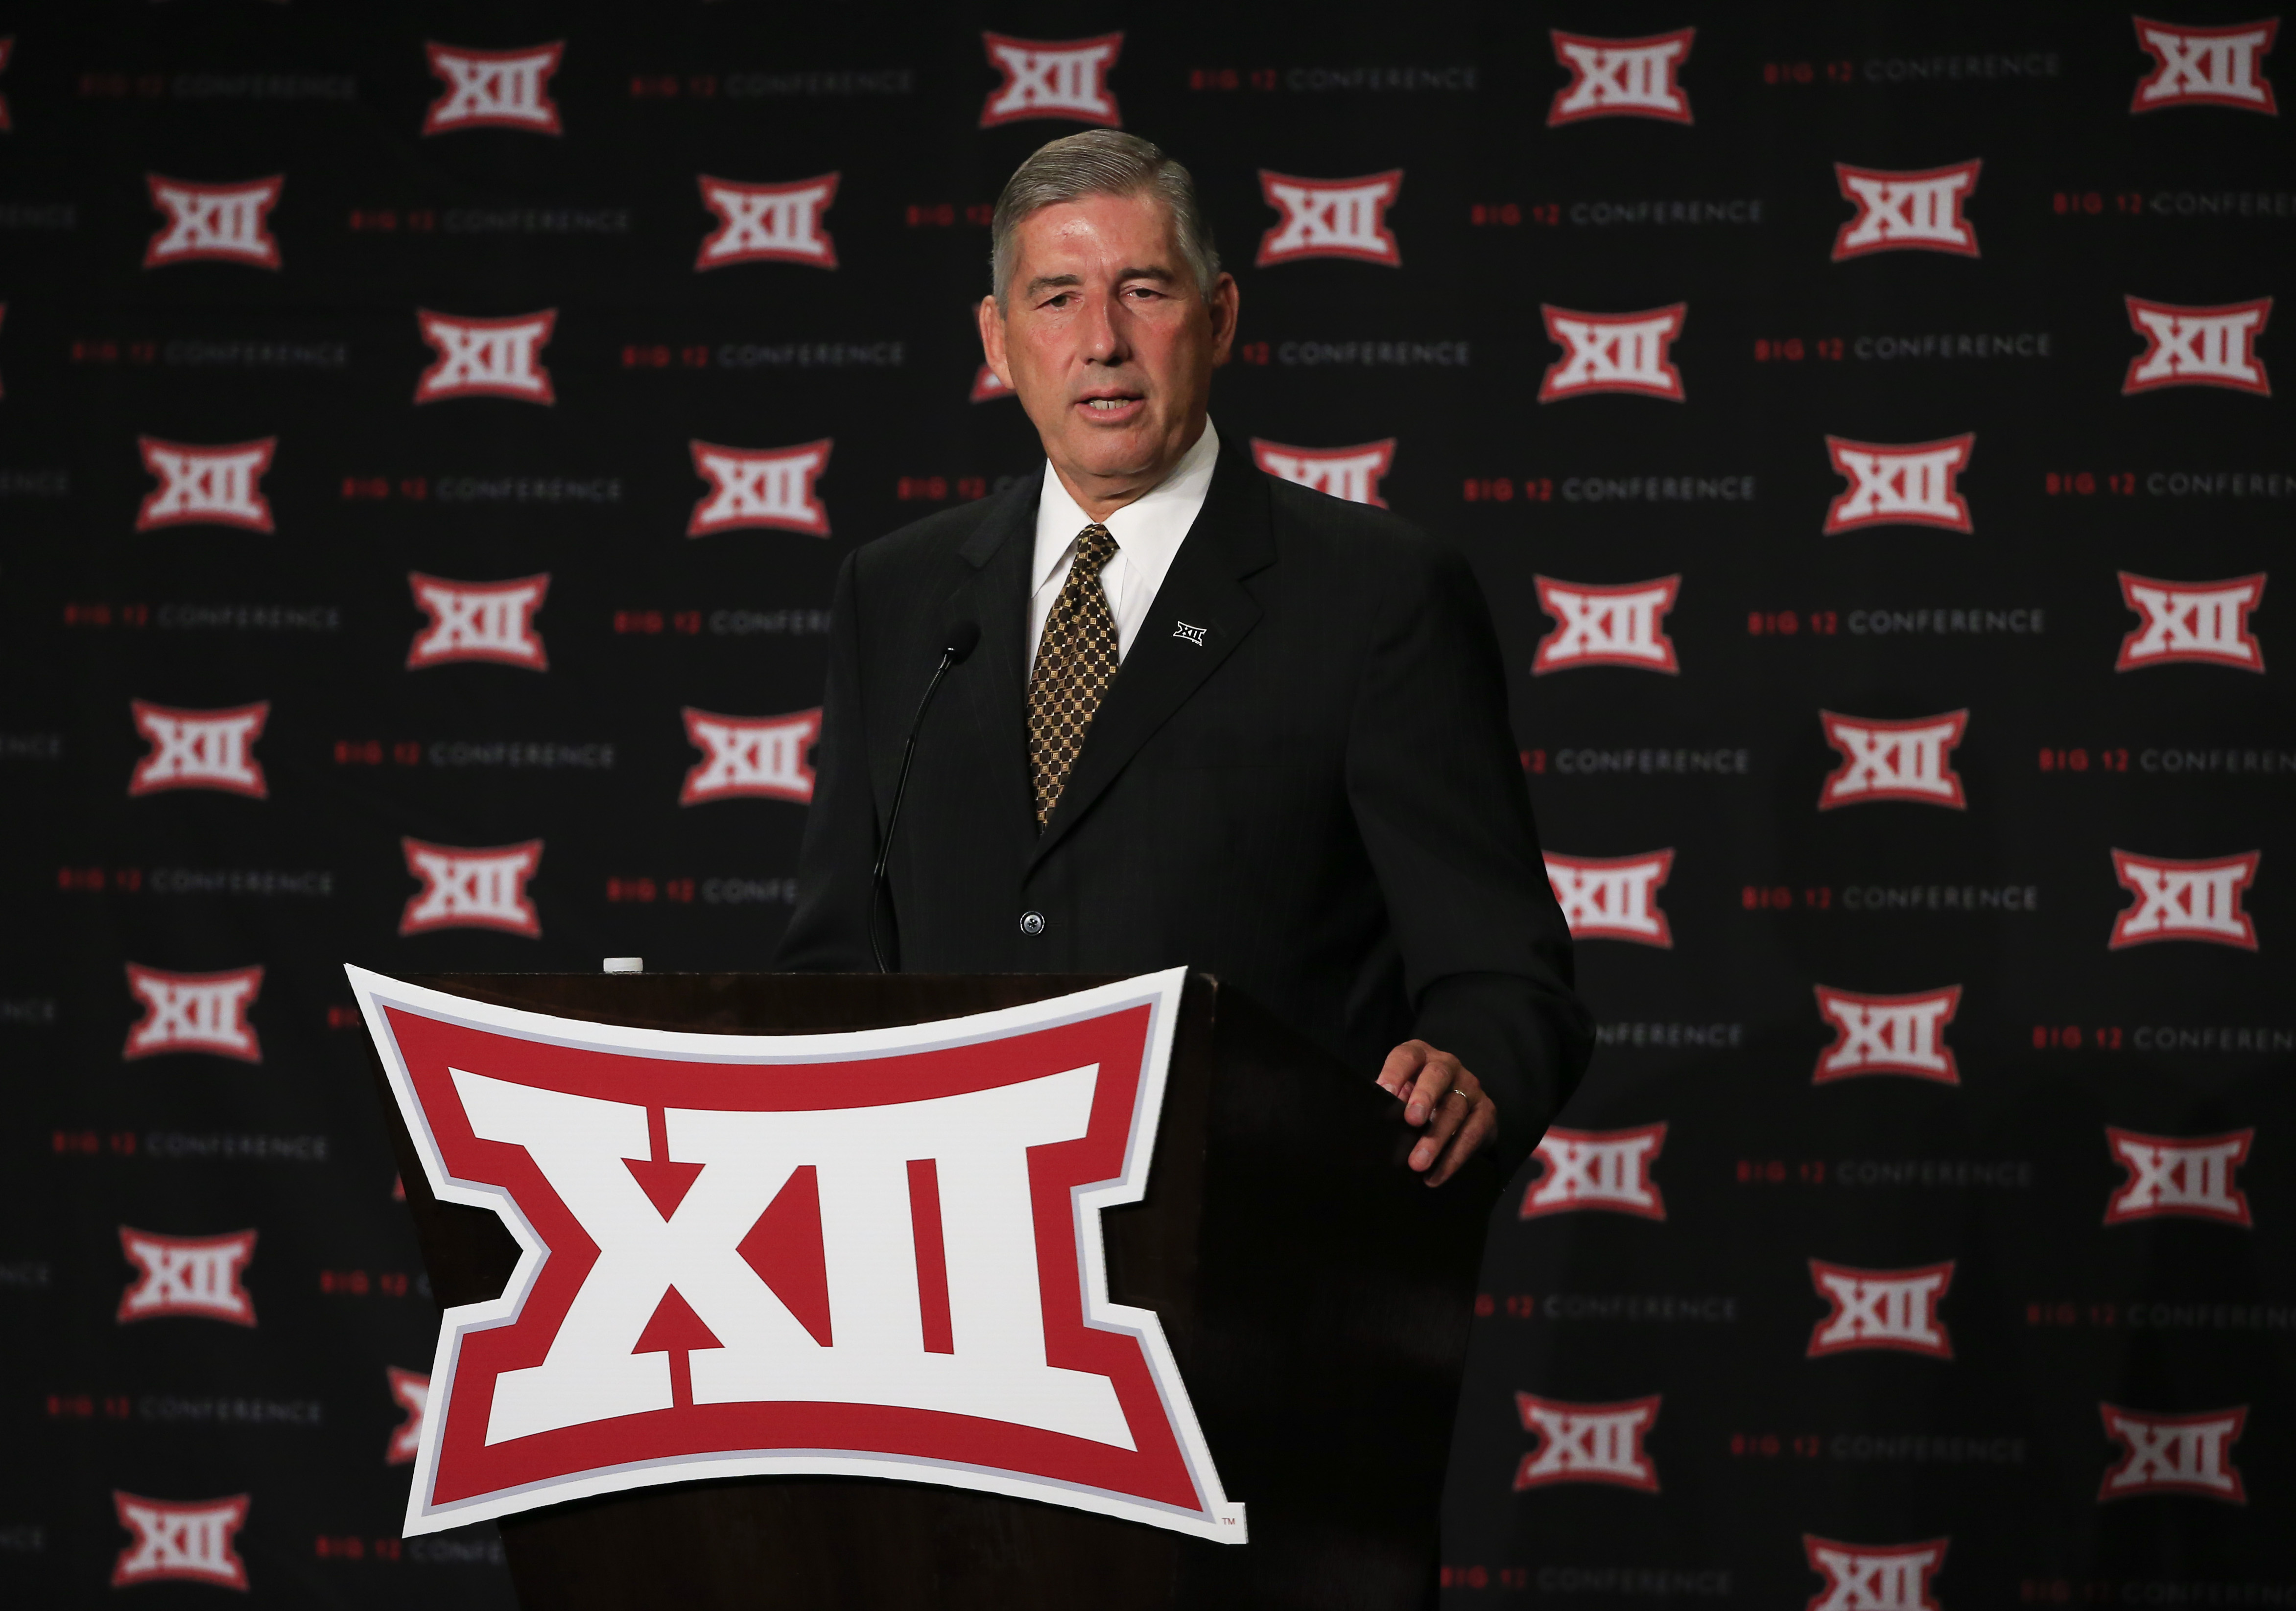 Big 12 Media Days kick off with a bang